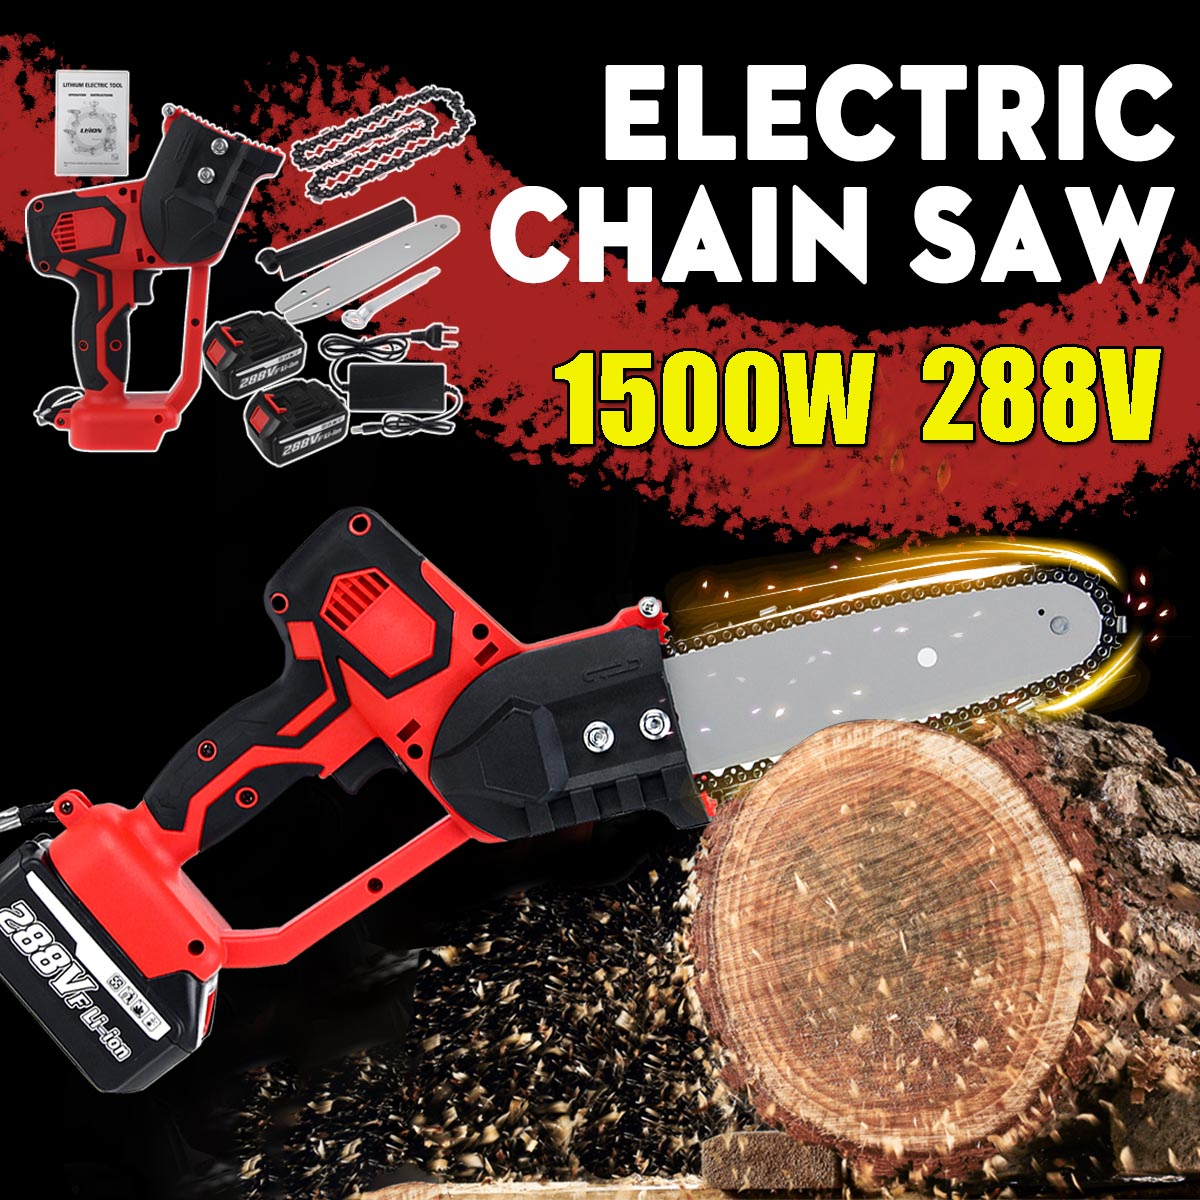 Electric Saw Chainsaw 8 inch 288V 1500W Rechargeable Woodworking Power Tool with 2 Batteries Brushless Motor Wood Cutter Kit